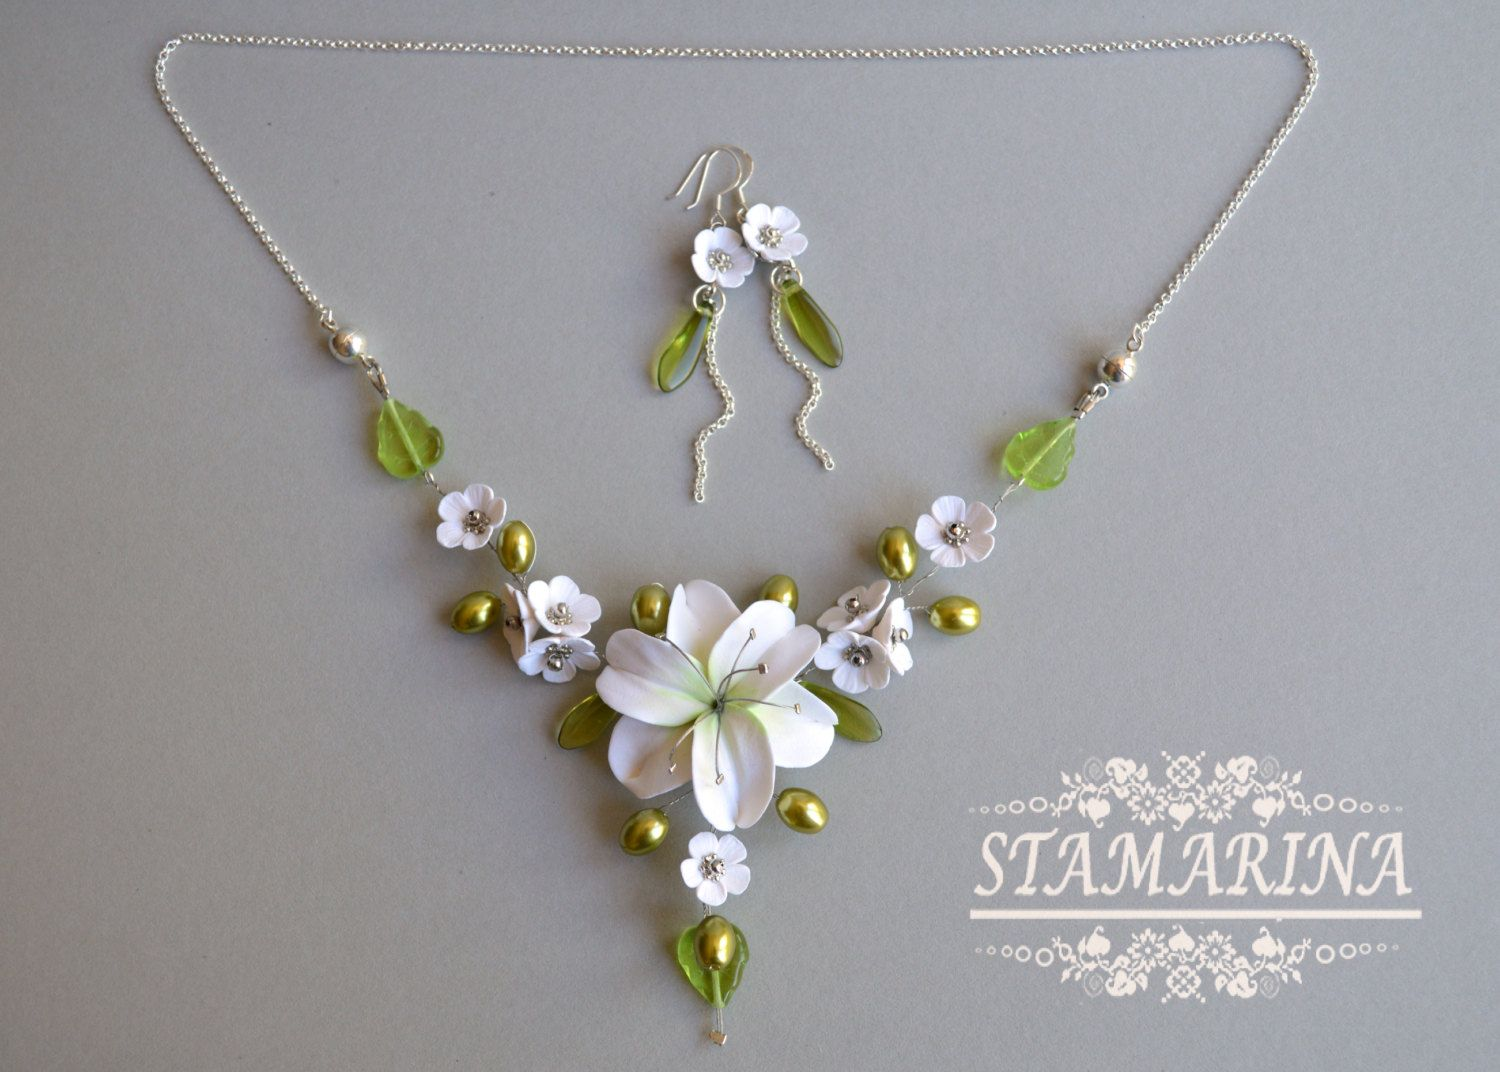 2 In 1 Necklace Bracelet Floral Jewelry Set Transformer Statement Necklace Bracelet Convertible Jewellery Multifunctional Jewelry Set With Images Floral Jewellery Convertible Jewelry Jewelry Sets